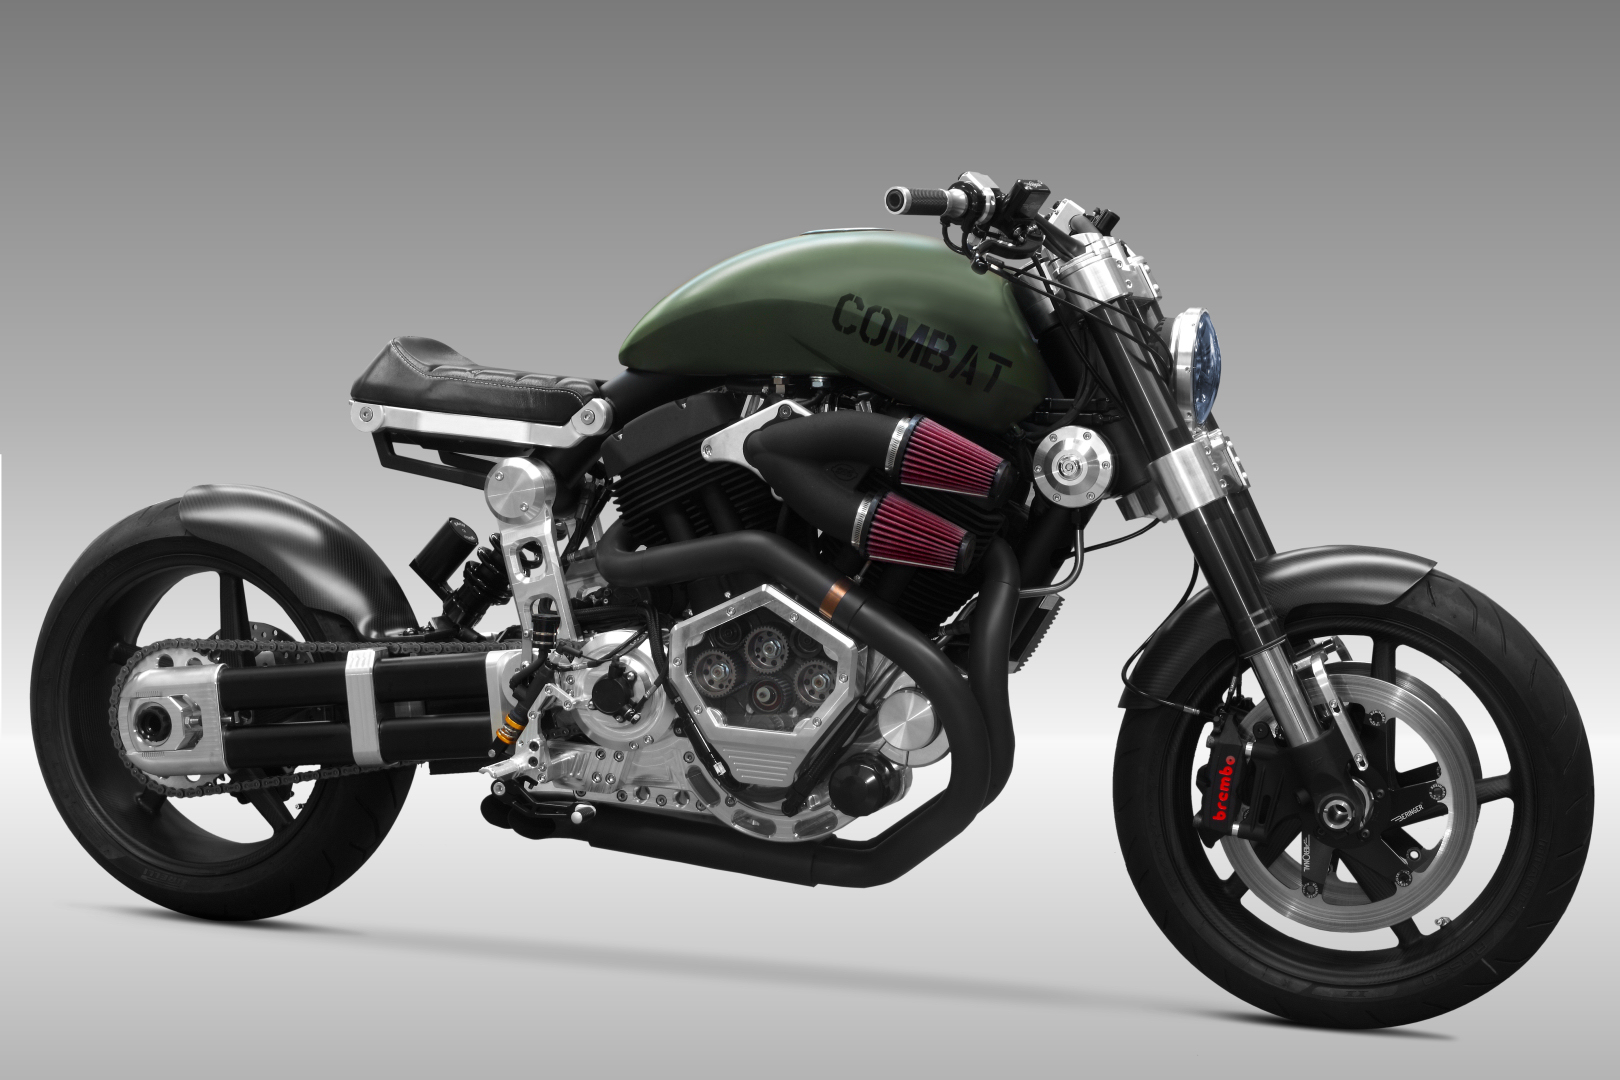 Confederate X132 Hellcat Combat Motorcycle is World's Fastest Big Block V-Twin, Can Hit 172MPH